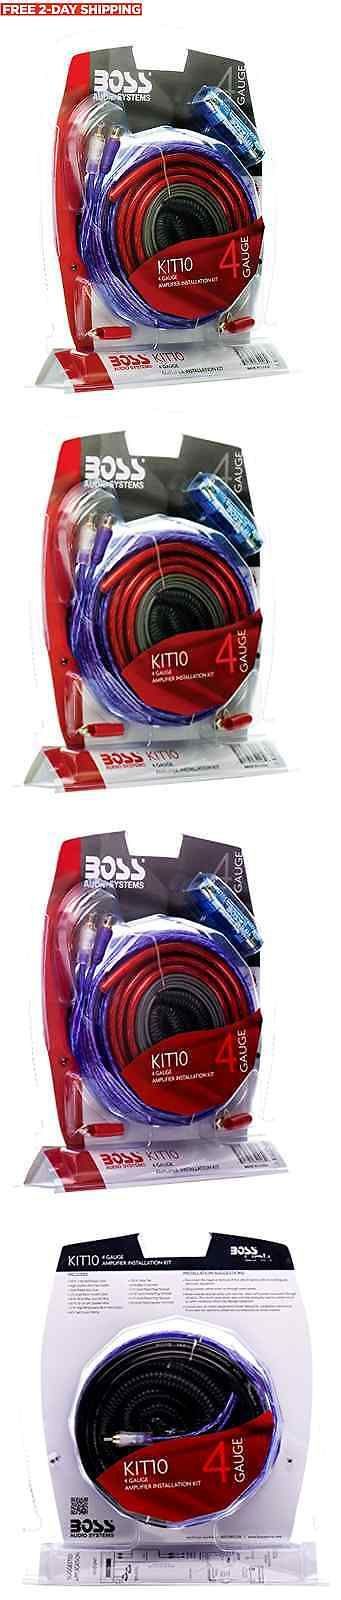 Amplifier Kits: Boss Audio Kit 4 Gauge Amp Amplifier Install Wiring Power Sub Car Subwoofer Kit BUY IT NOW ONLY: $30.23